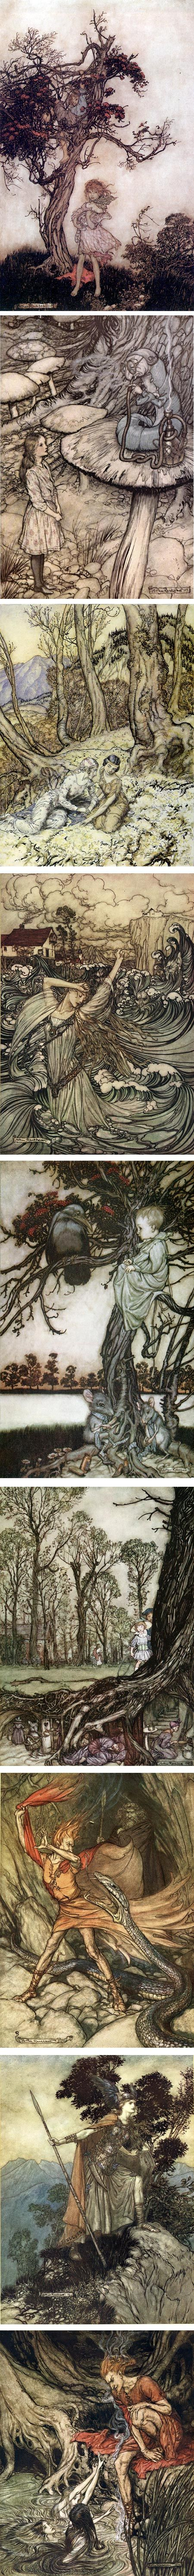 best ideas about arthur rackham illustrators 41 best ideas about arthur rackham illustrators christina rossetti and illustration animals